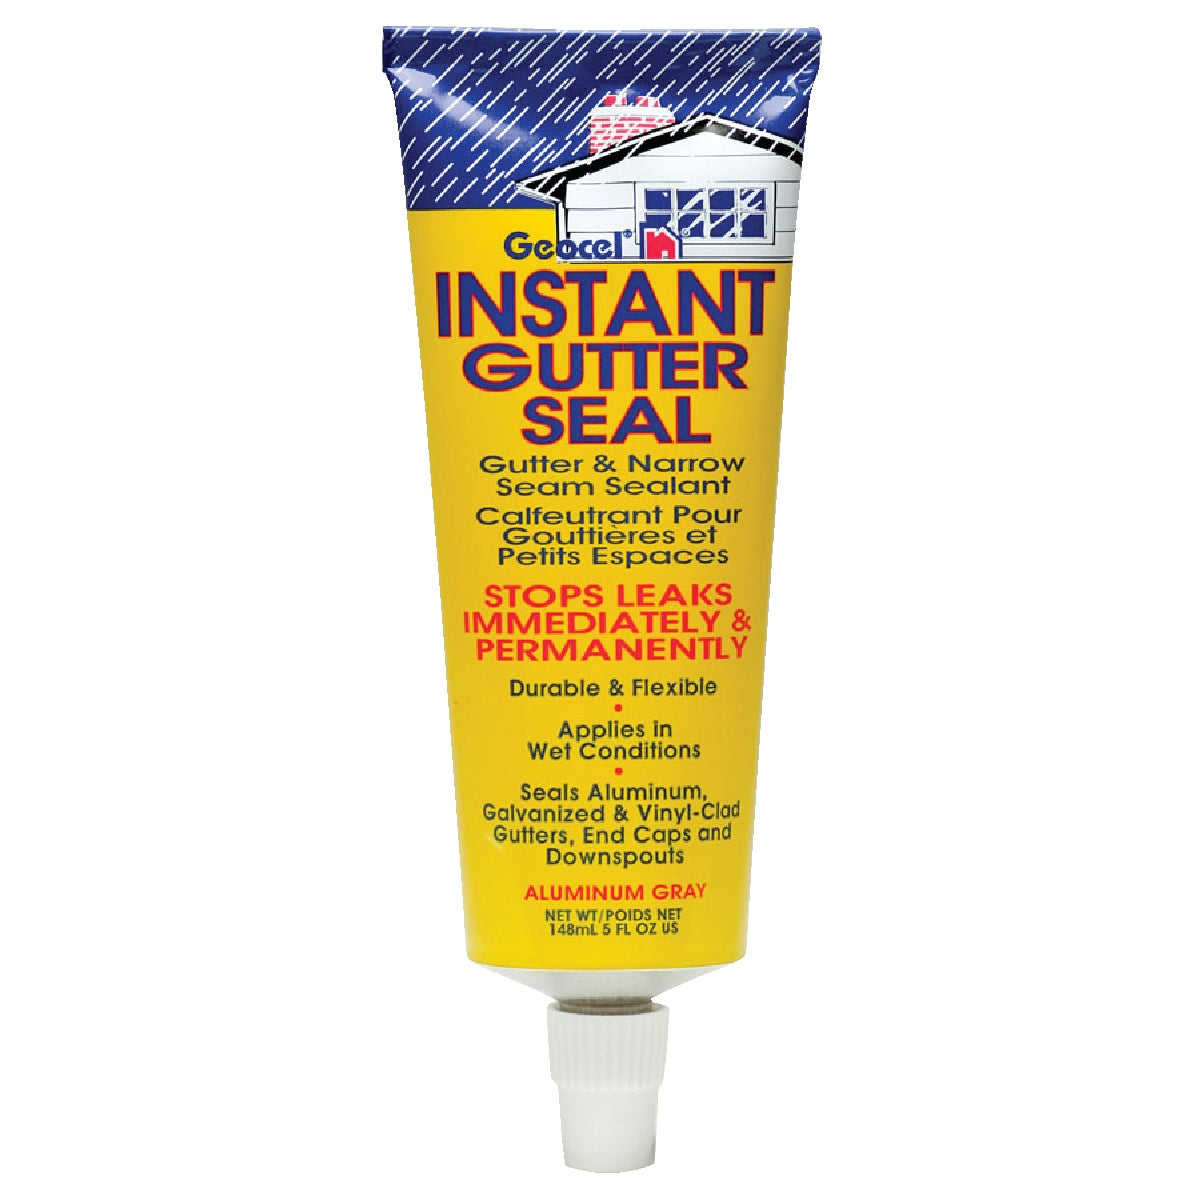 5OZ GRAY GUTTER SEALANT - GC29402 by Geocel Llc